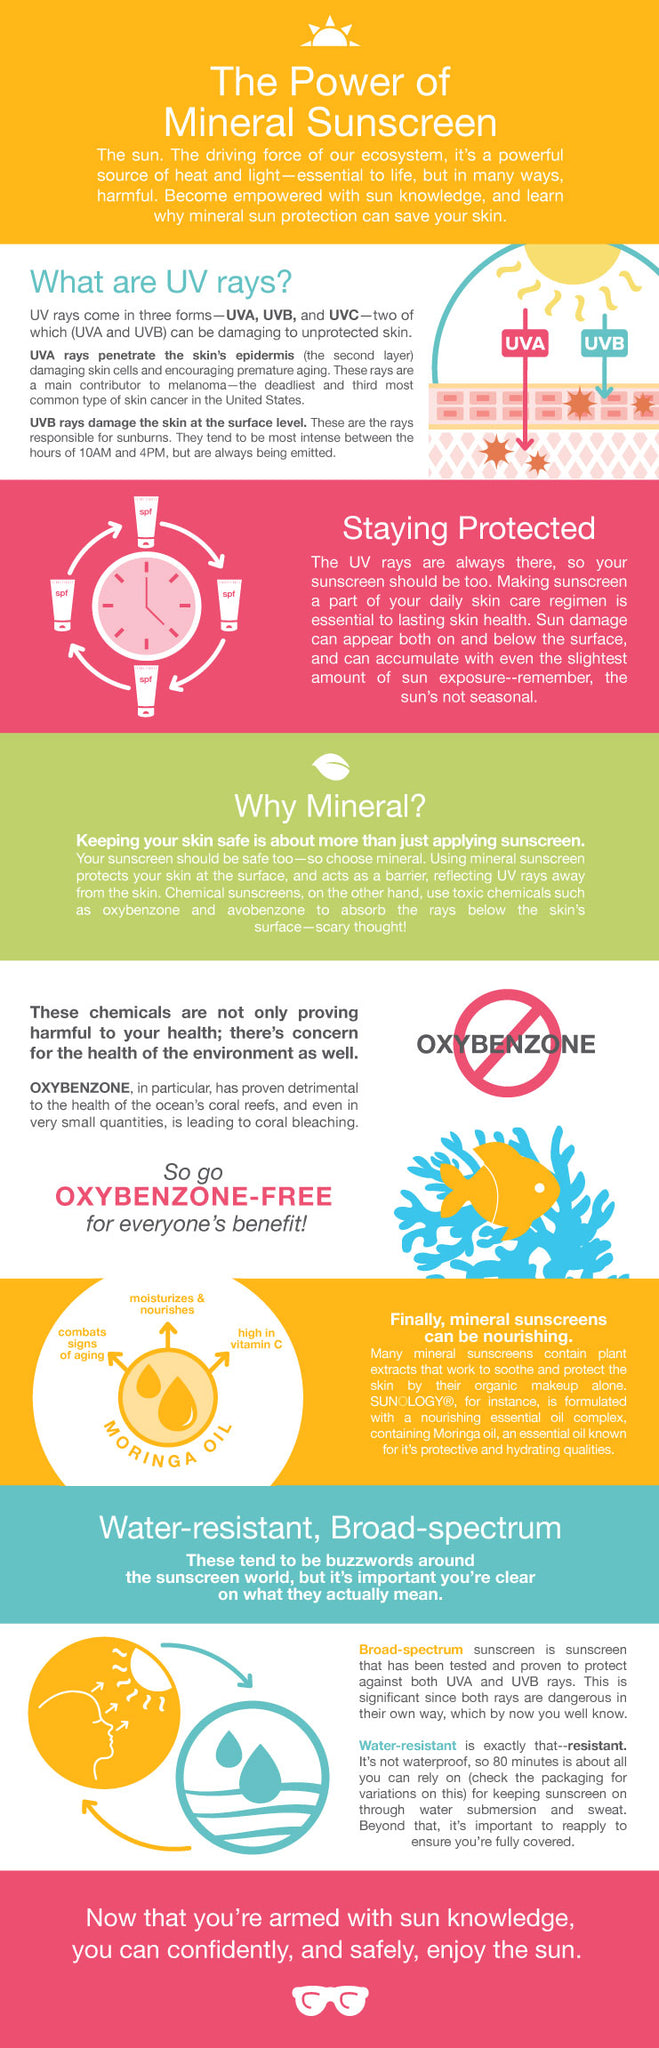 why mineral sunscreen